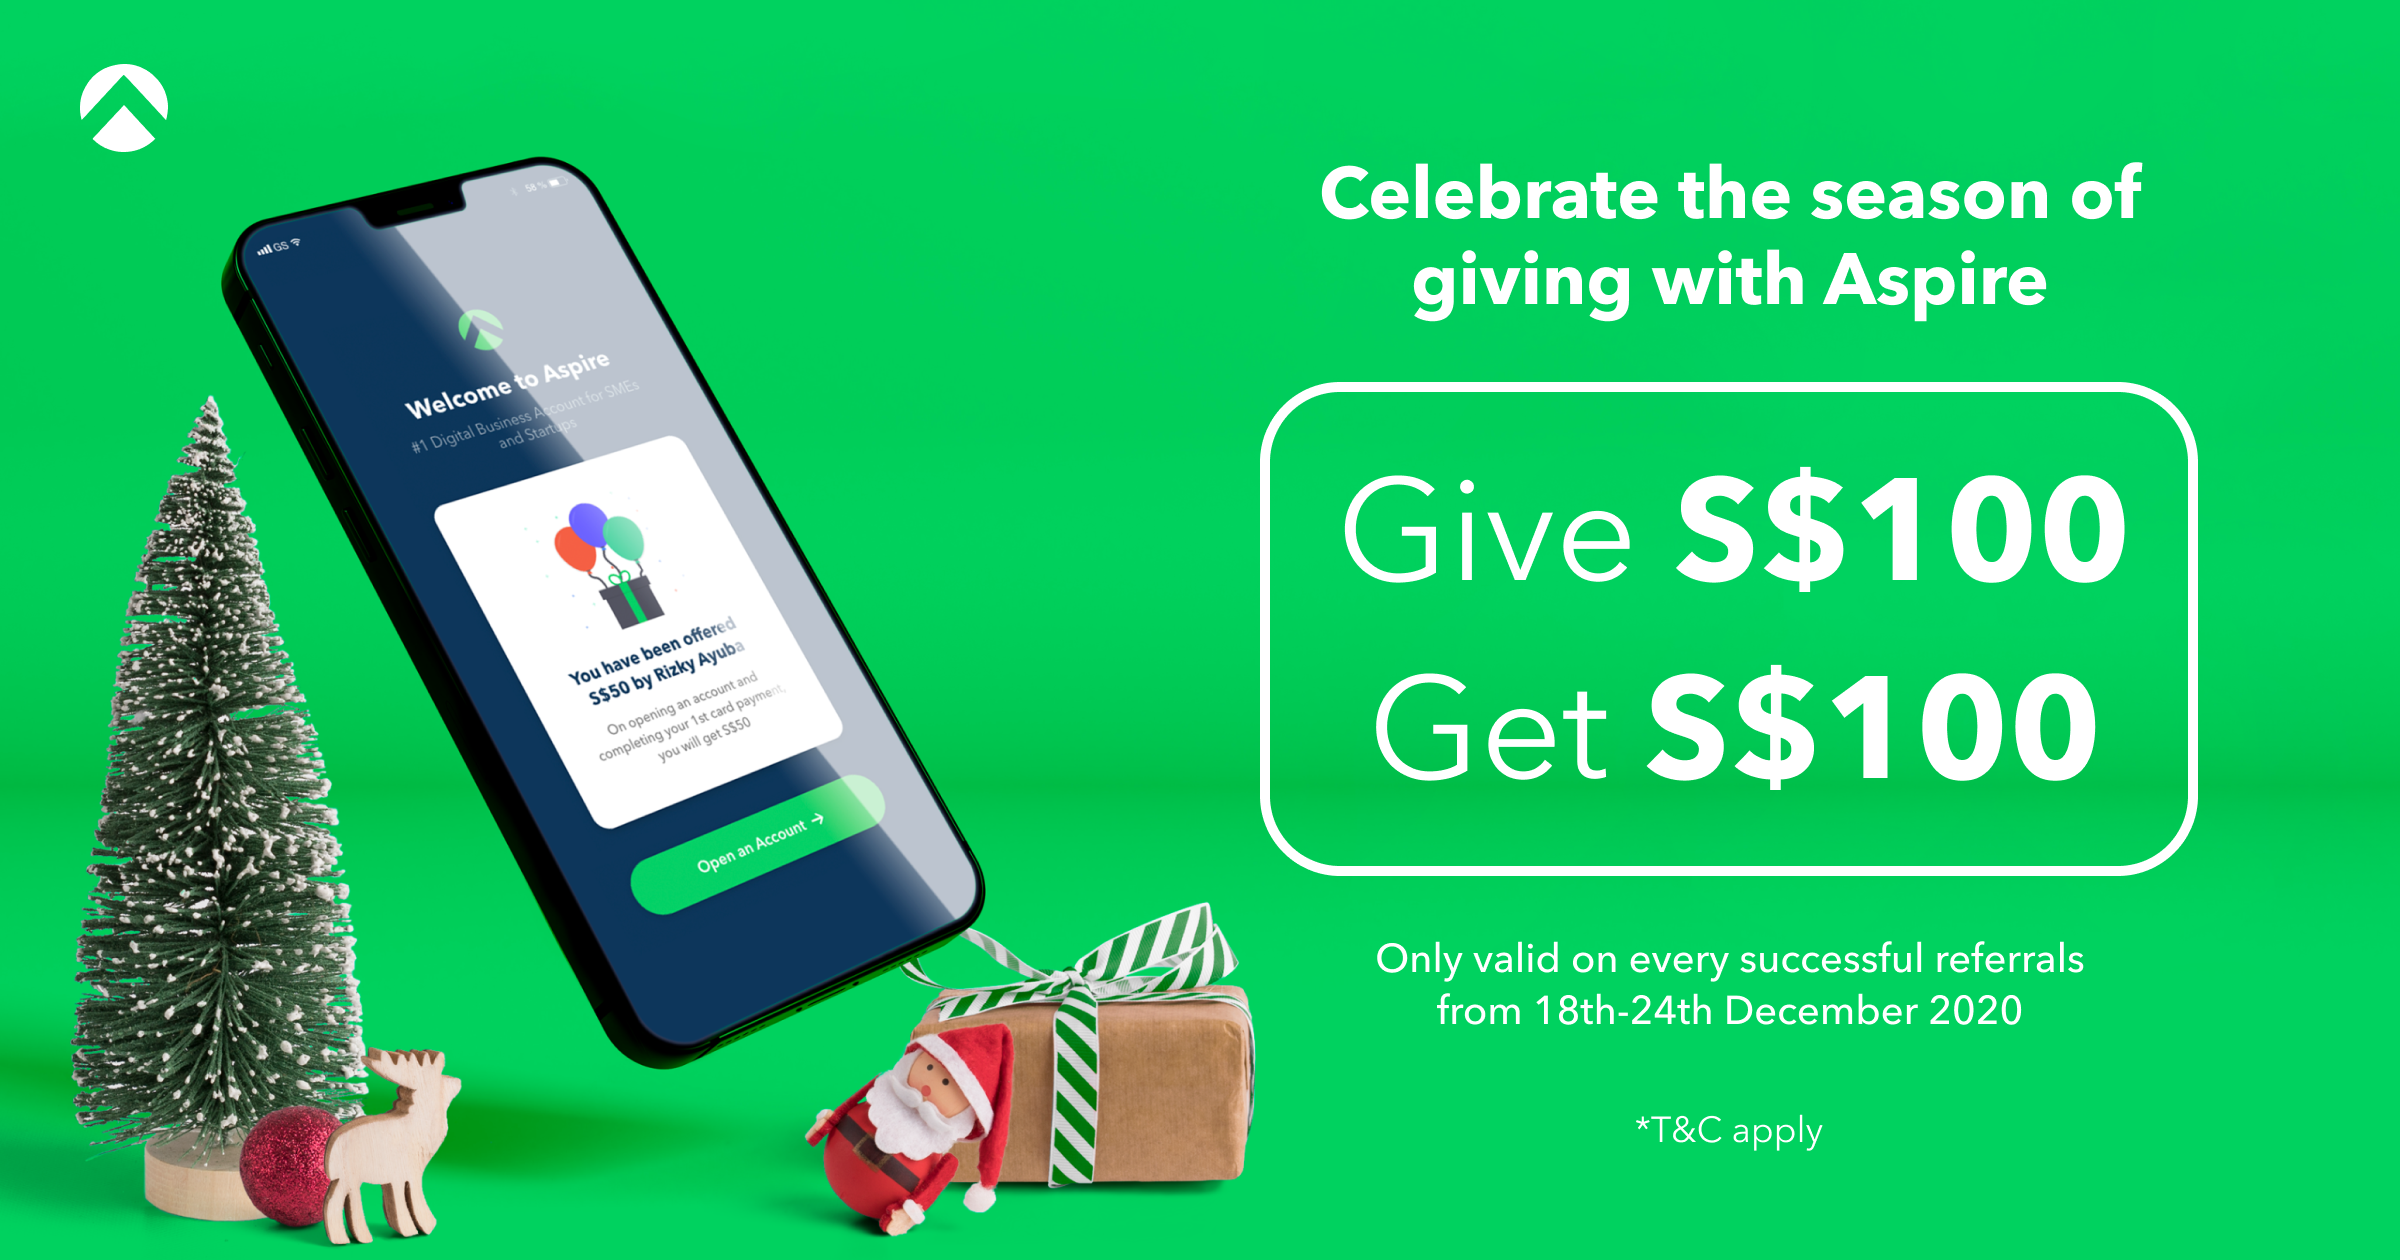 We're doubling our referral rewards this Christmas! Give S$100 Get S$100